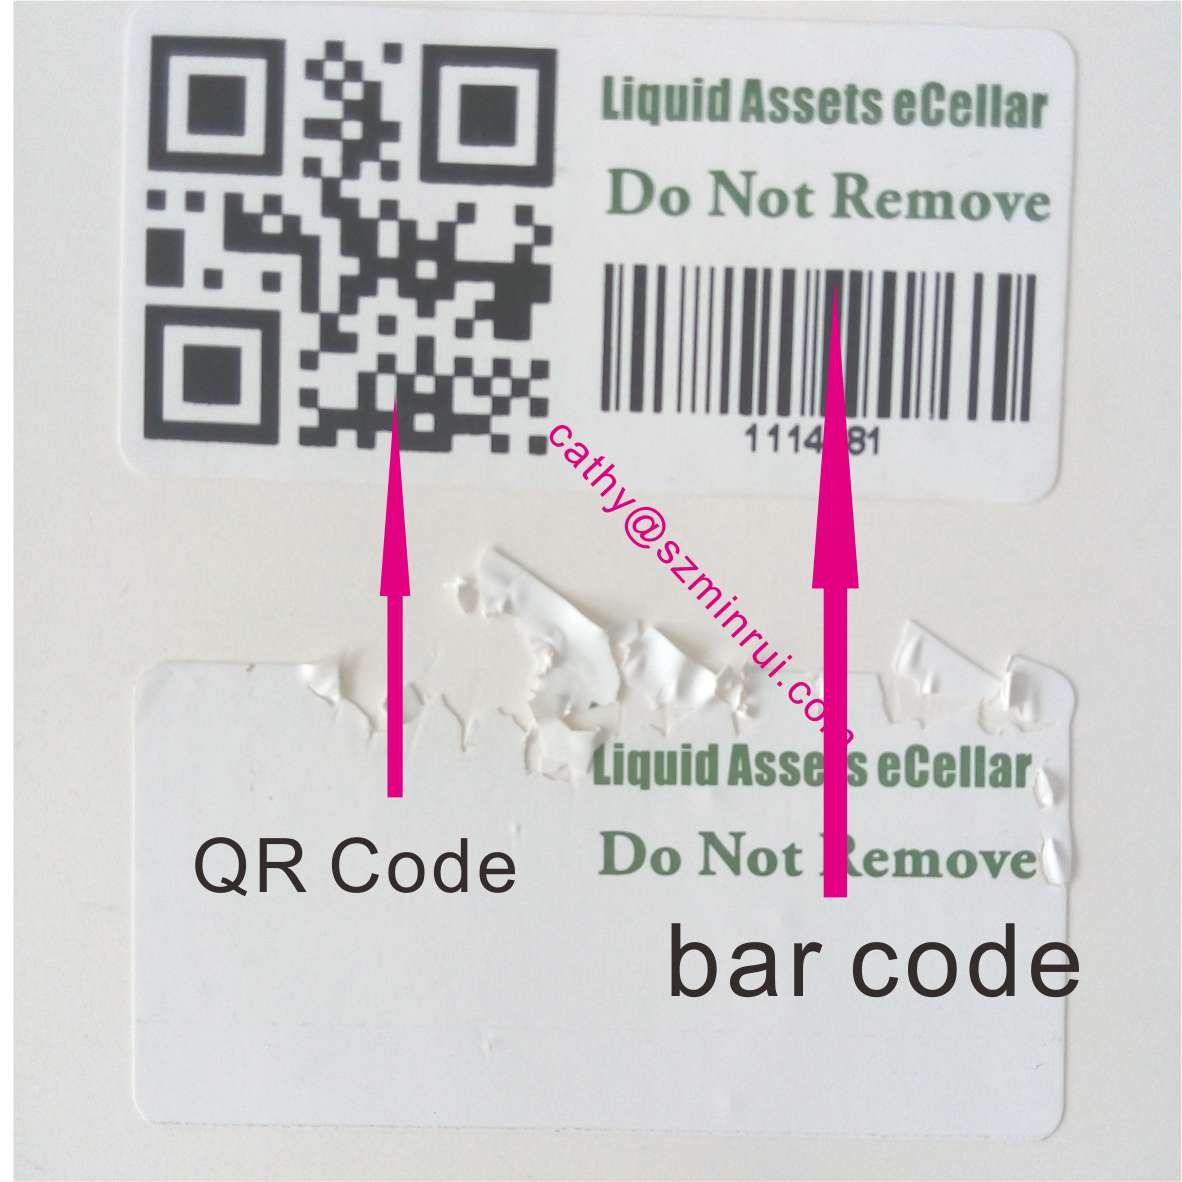 graphic relating to Printable Tamper Proof Labels called Customized Design and style With Your Brand Stability Tamper Evidence Dwelling Of Printable Barcode Sticker,Destrutcible Tamper Obvious Asset Label - Order Residence Of